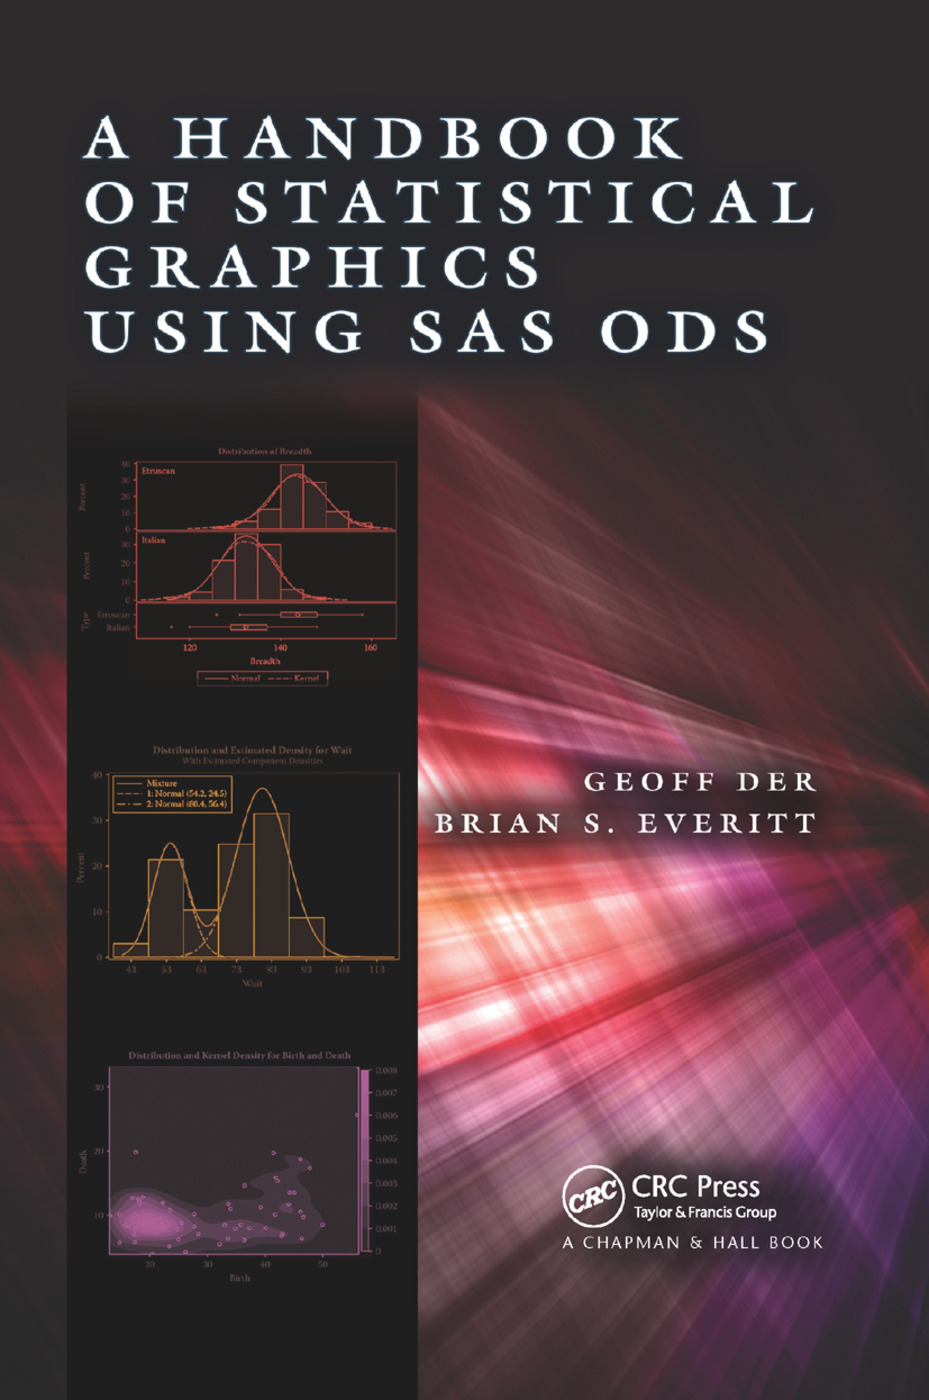 A Handbook of Statistical Graphics Using SAS ODS: 1st Edition (Paperback) book cover